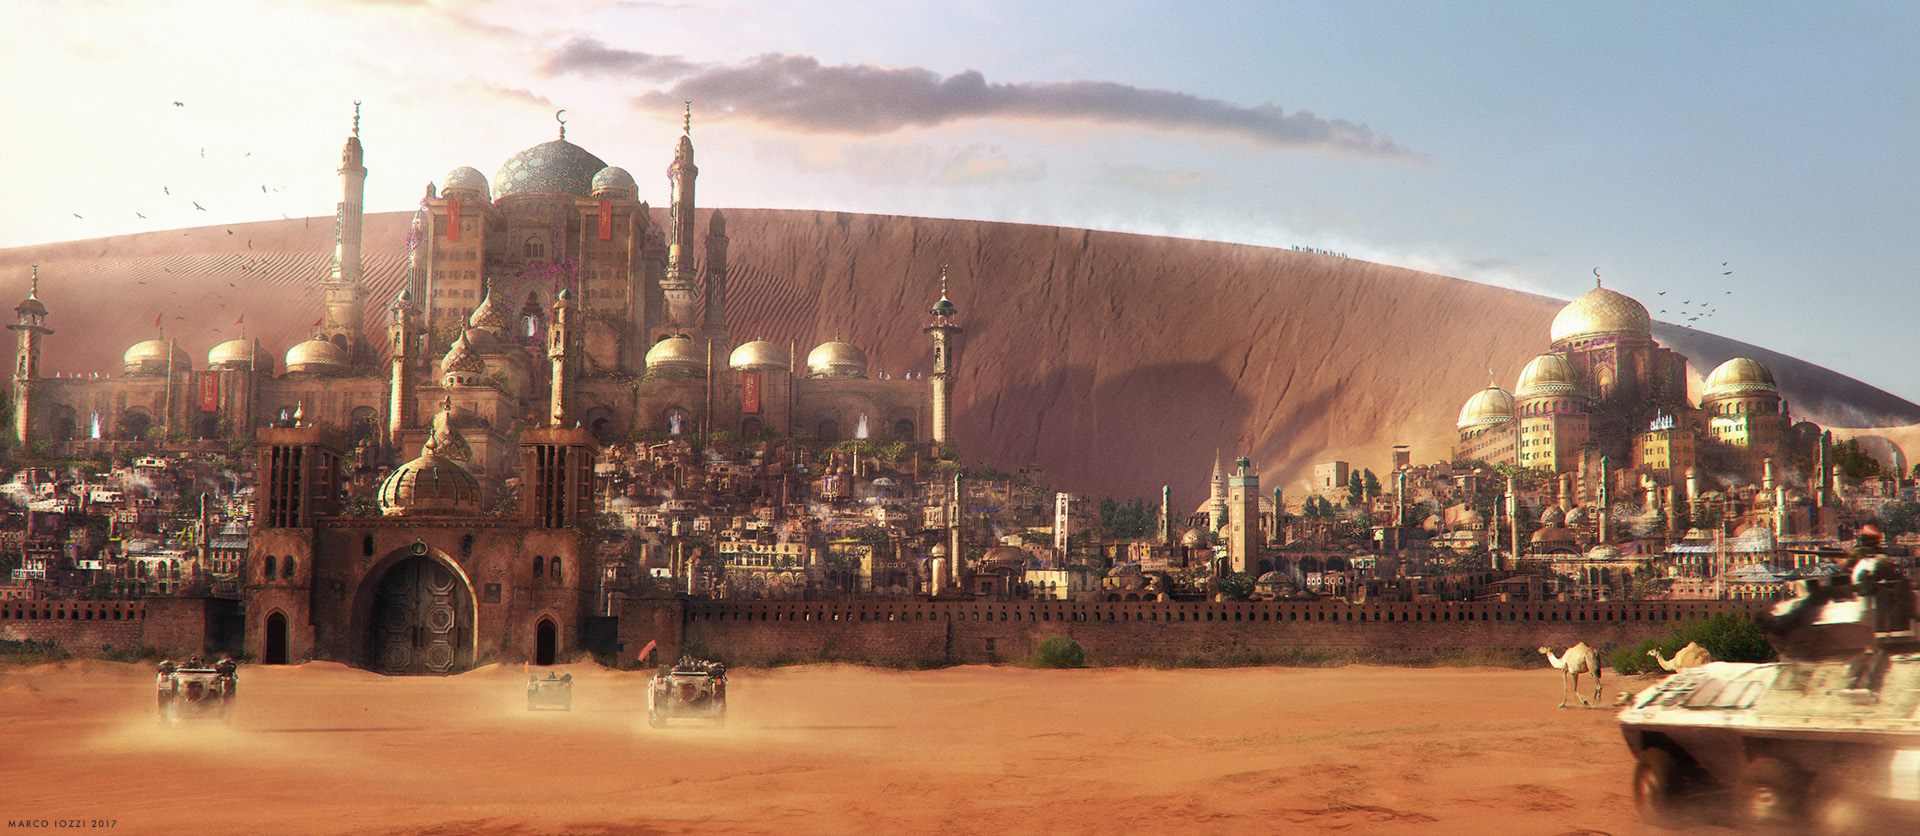 ENTERING GOLDEN CITY   - A view on a middle-east fictitious city hidden in the desert